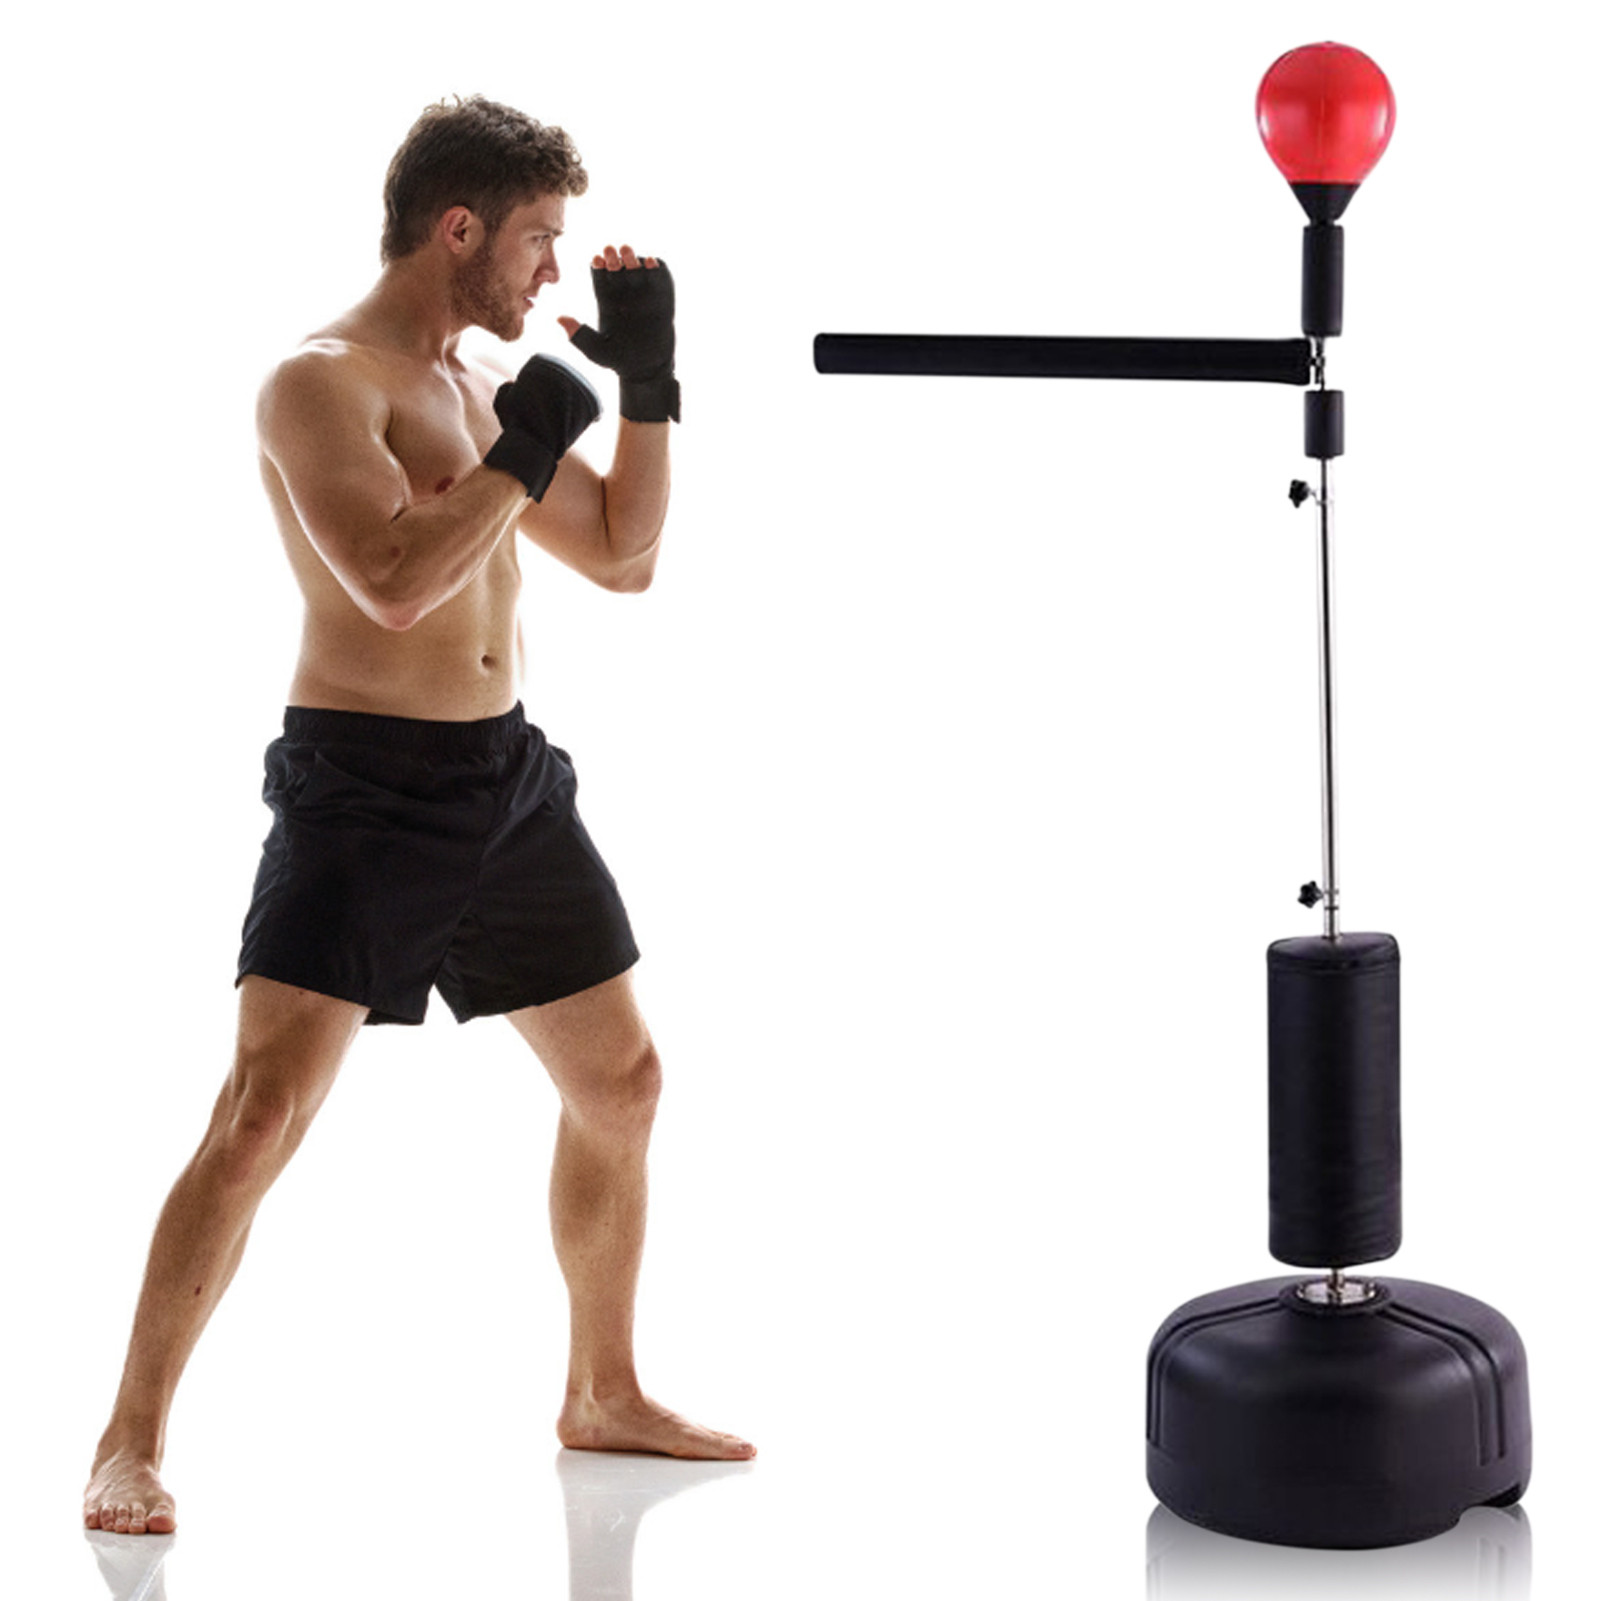 Stand Punching Bag Boxing Speed Response Target With 360 Reflex Bar Adjustable Training Targe Heavy Stand Punching Bag